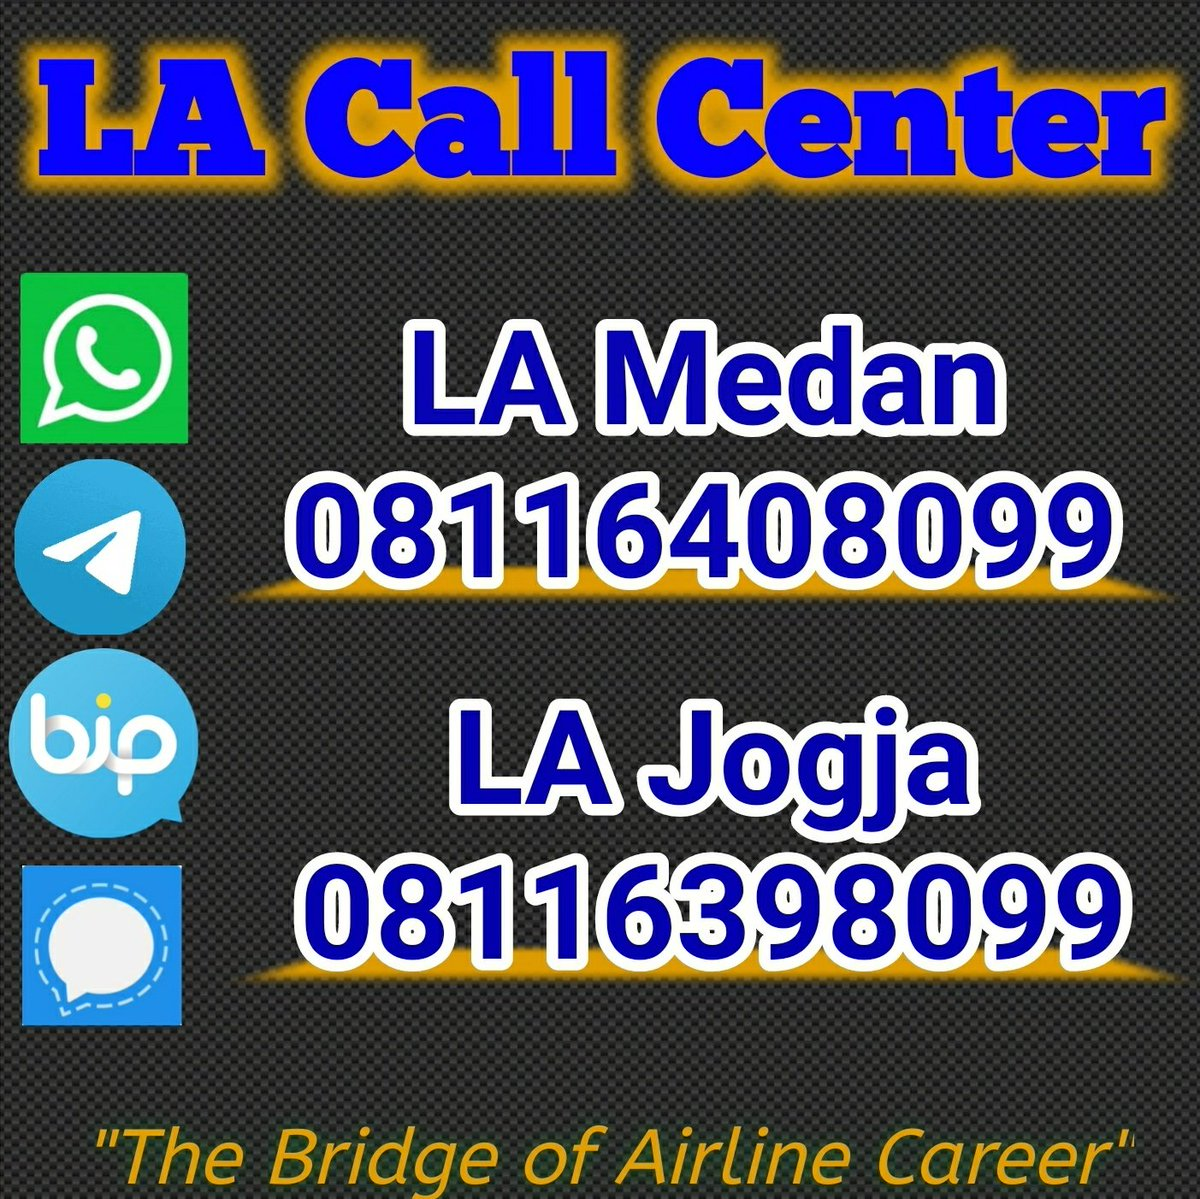 Telah dibuka akses komunikasi yang lebih luas untuk Sahabat LA yang akan melakukan komunikasi dengan Staff Lintas Angkasa Aviation Training Center (LA). Available akses beberapa aplikasi yaitu Whatsapp, Telegram, BIP & Signal.  #LAcallcenter https://t.co/Ih9hbMk1aK